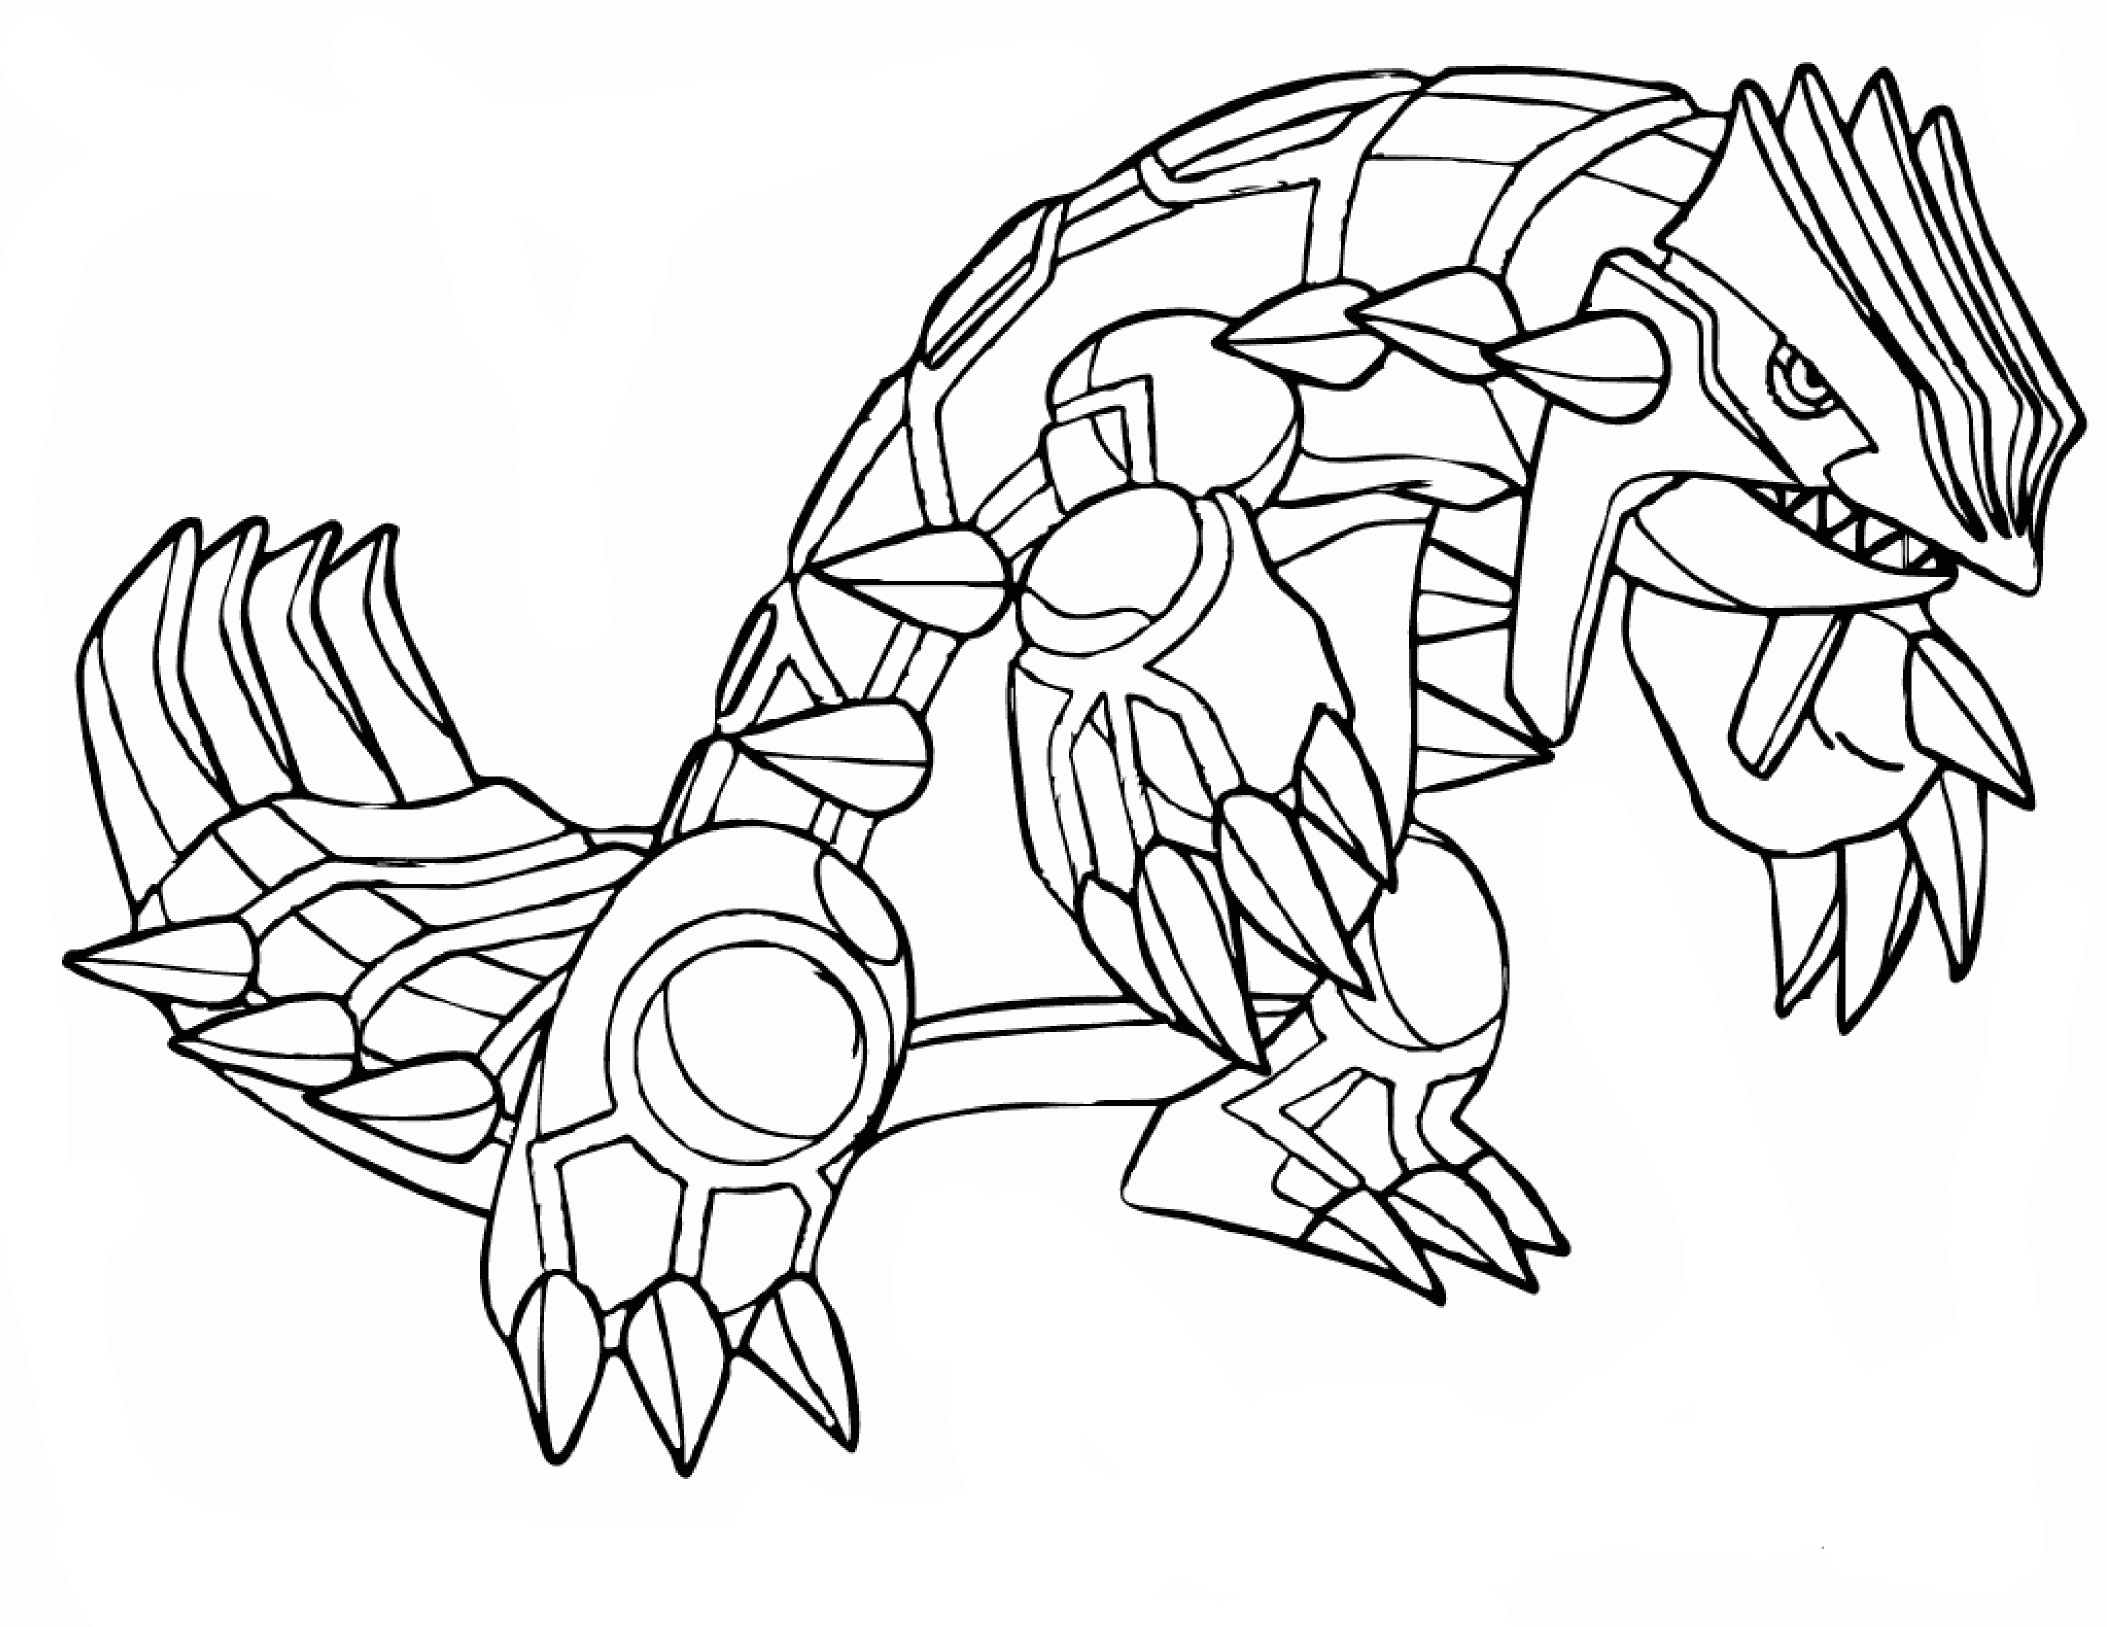 Excellent Carte Pokemon Mega A Imprimer 44 sur Coloriage Pages for Carte Pokemon Mega A Imprimer